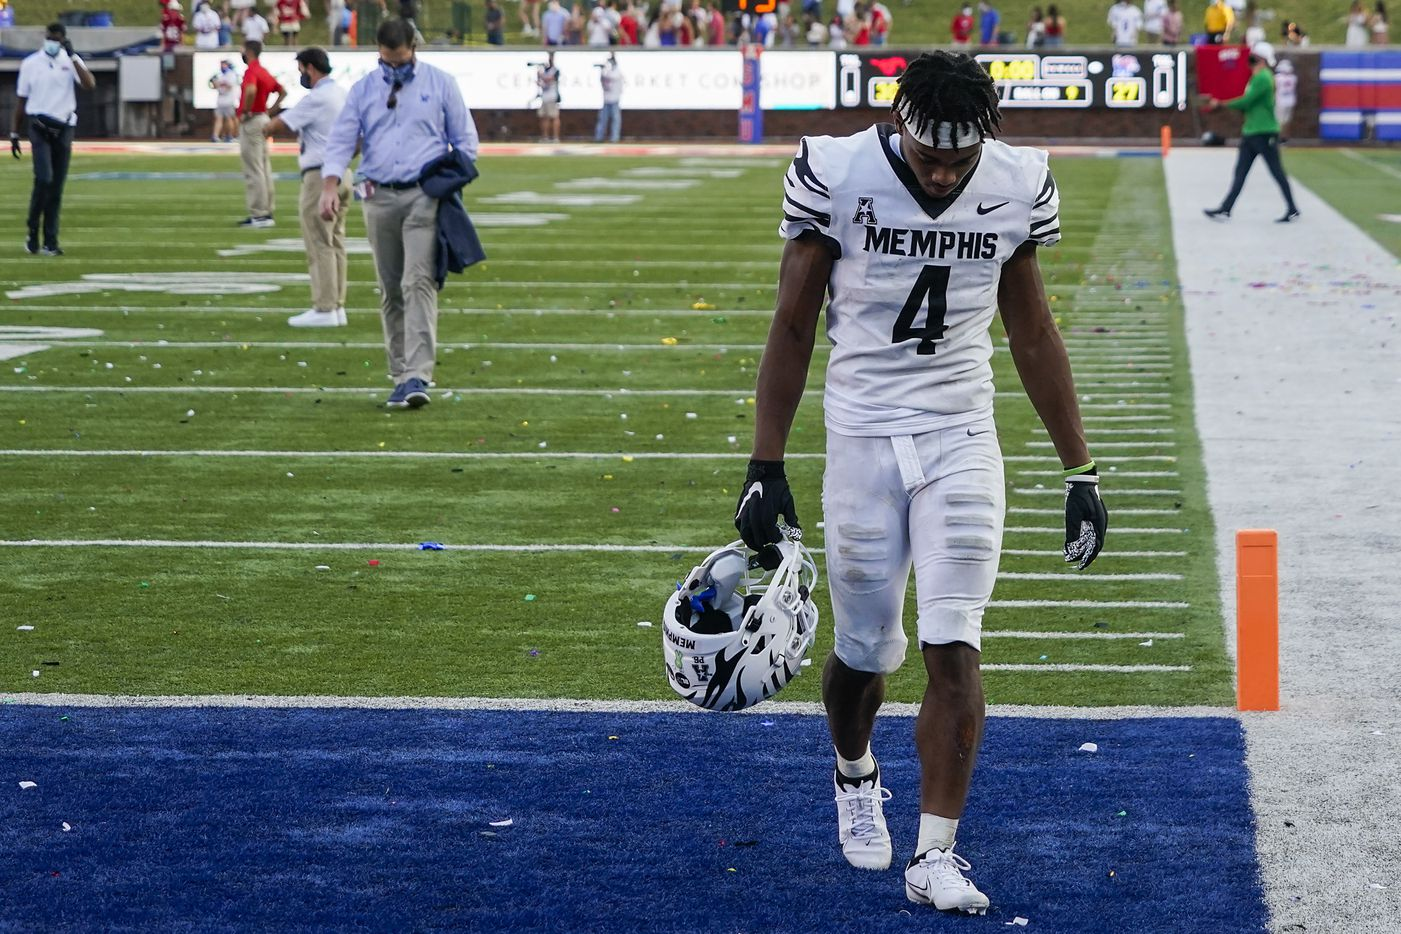 Memphis wide receiver Calvin Austin III walks off the field following a 30-27 loss to SMU in an NCAA football game at Ford Stadium on Saturday, Oct. 3, 2020, in Dallas.